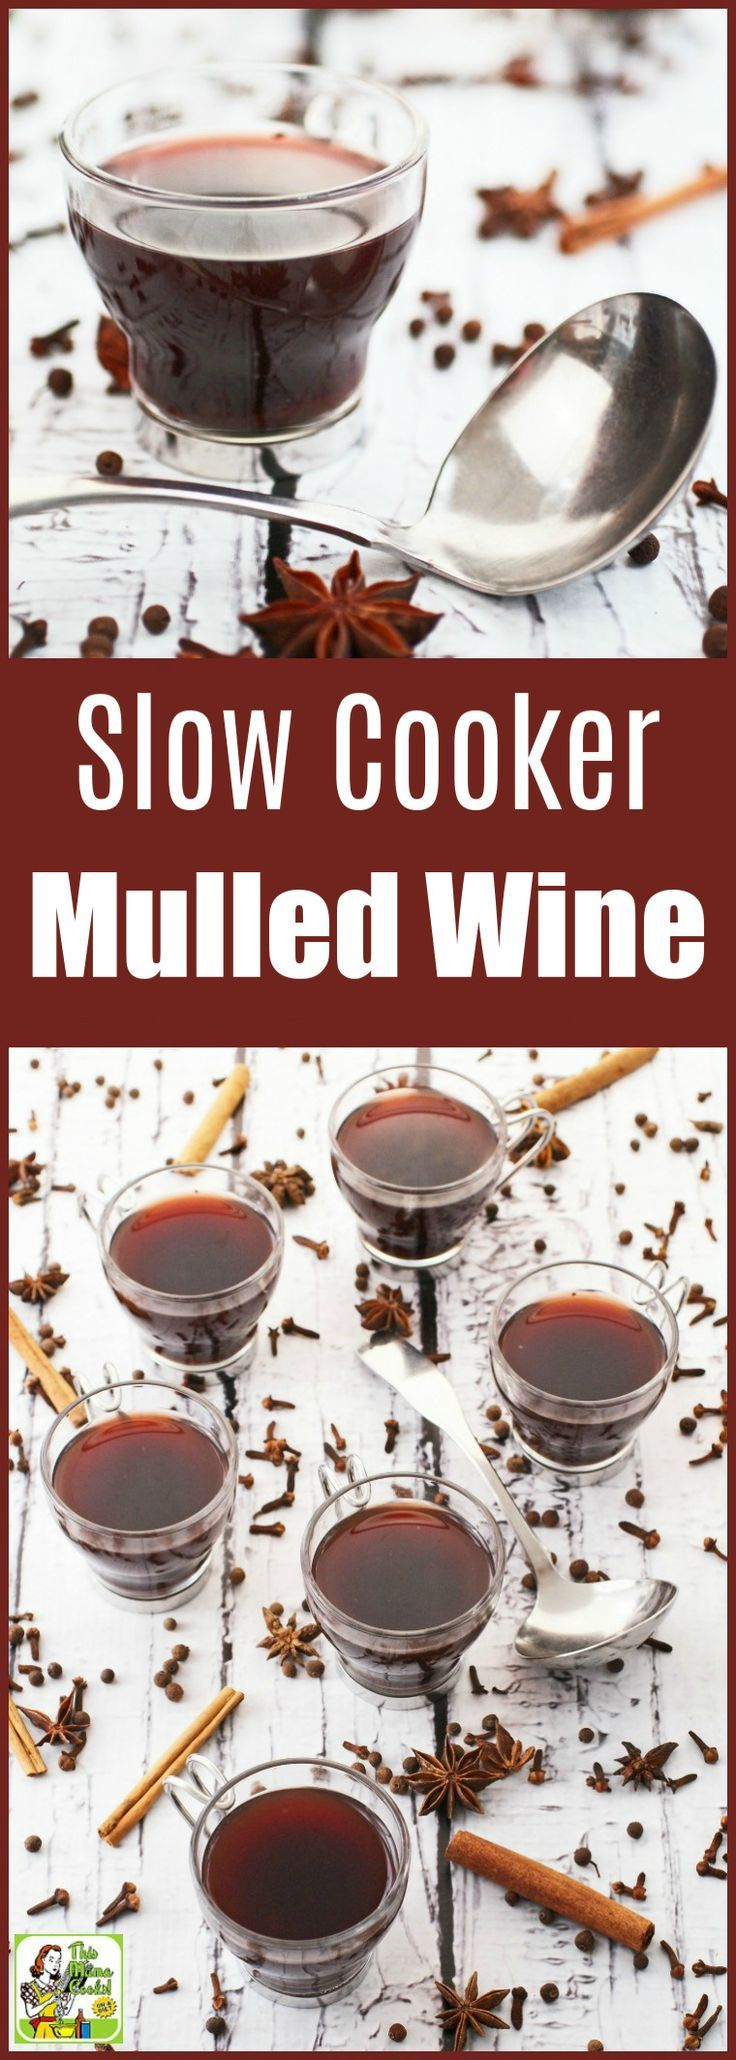 Warm Up With Some Slow Cooker Mulled Wine Wine Recipes Mulled Wine Recipe Mulled Wine Crockpot